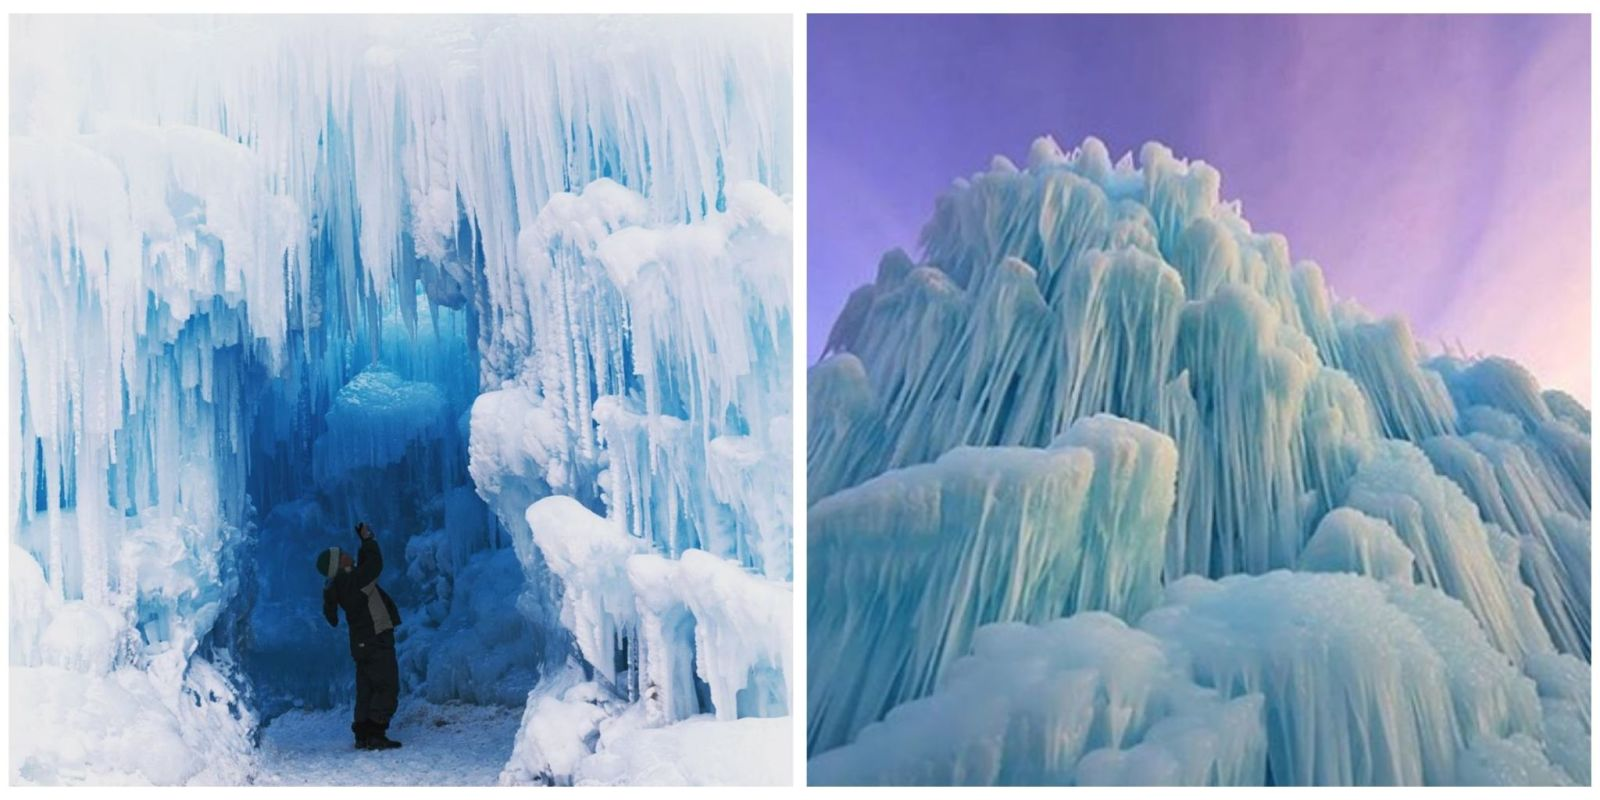 Ice Castle New Hampshire Incredible Ice Sculpture Photos